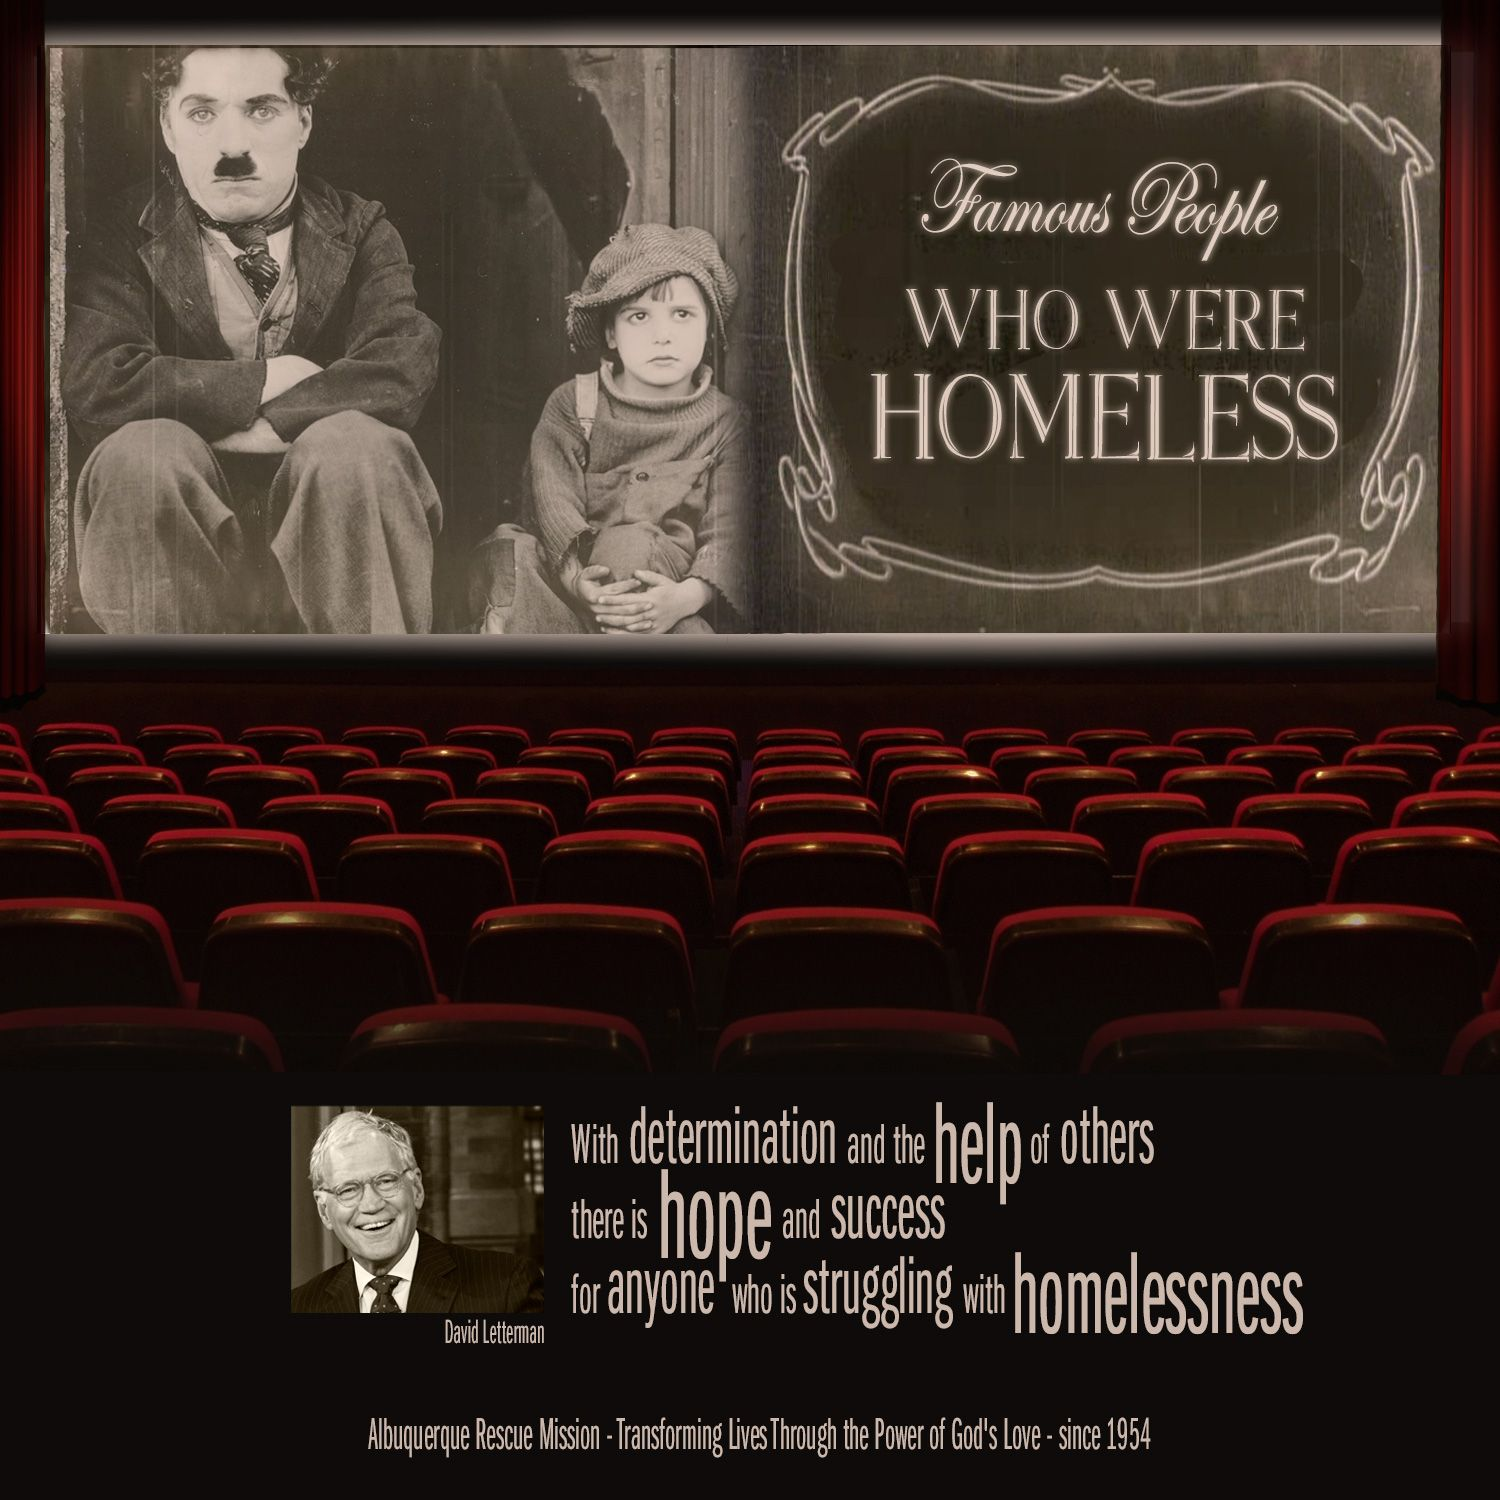 Famous People who Were Homeless When David Letterman